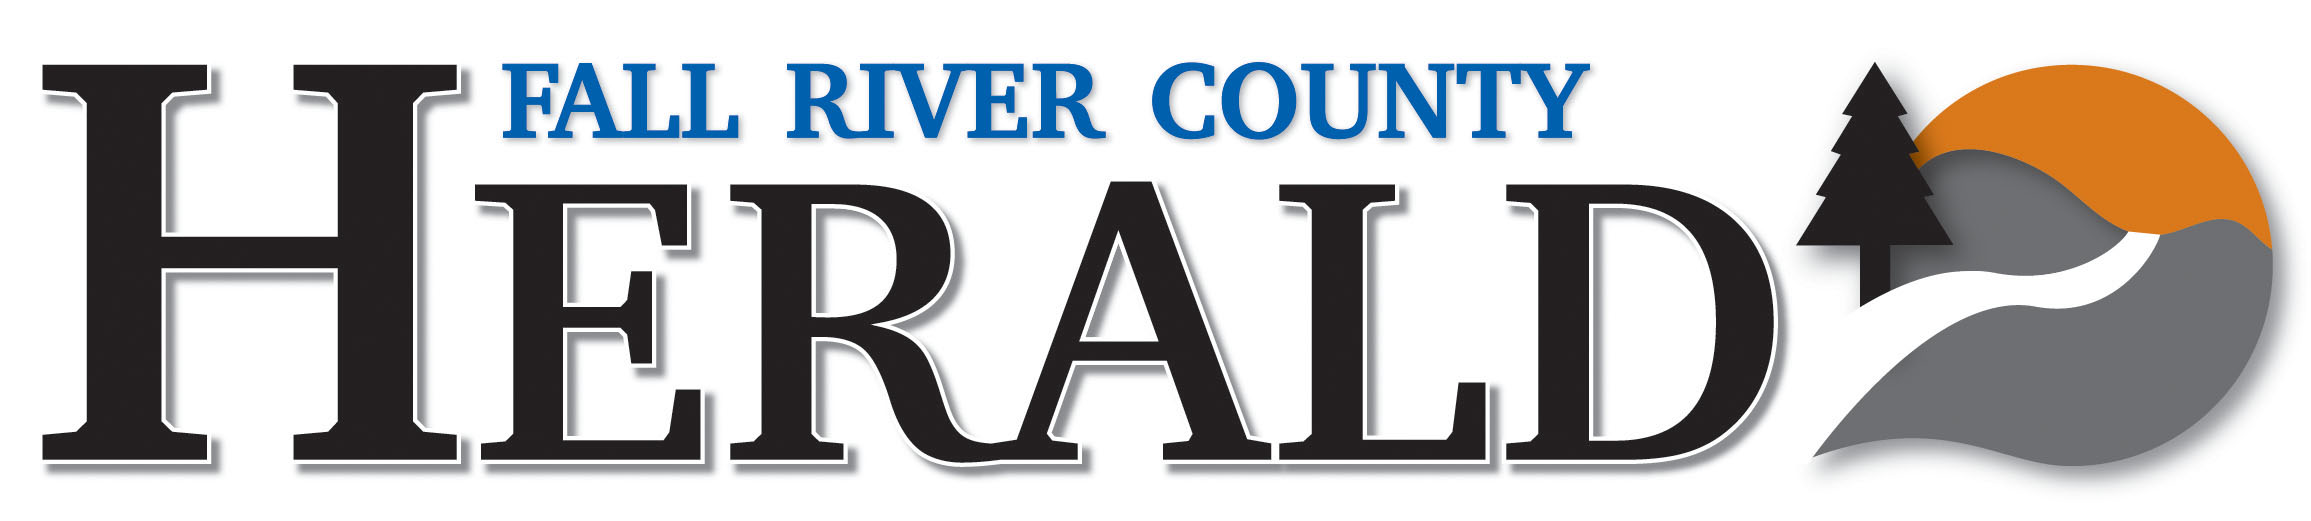 Fall River County Herald